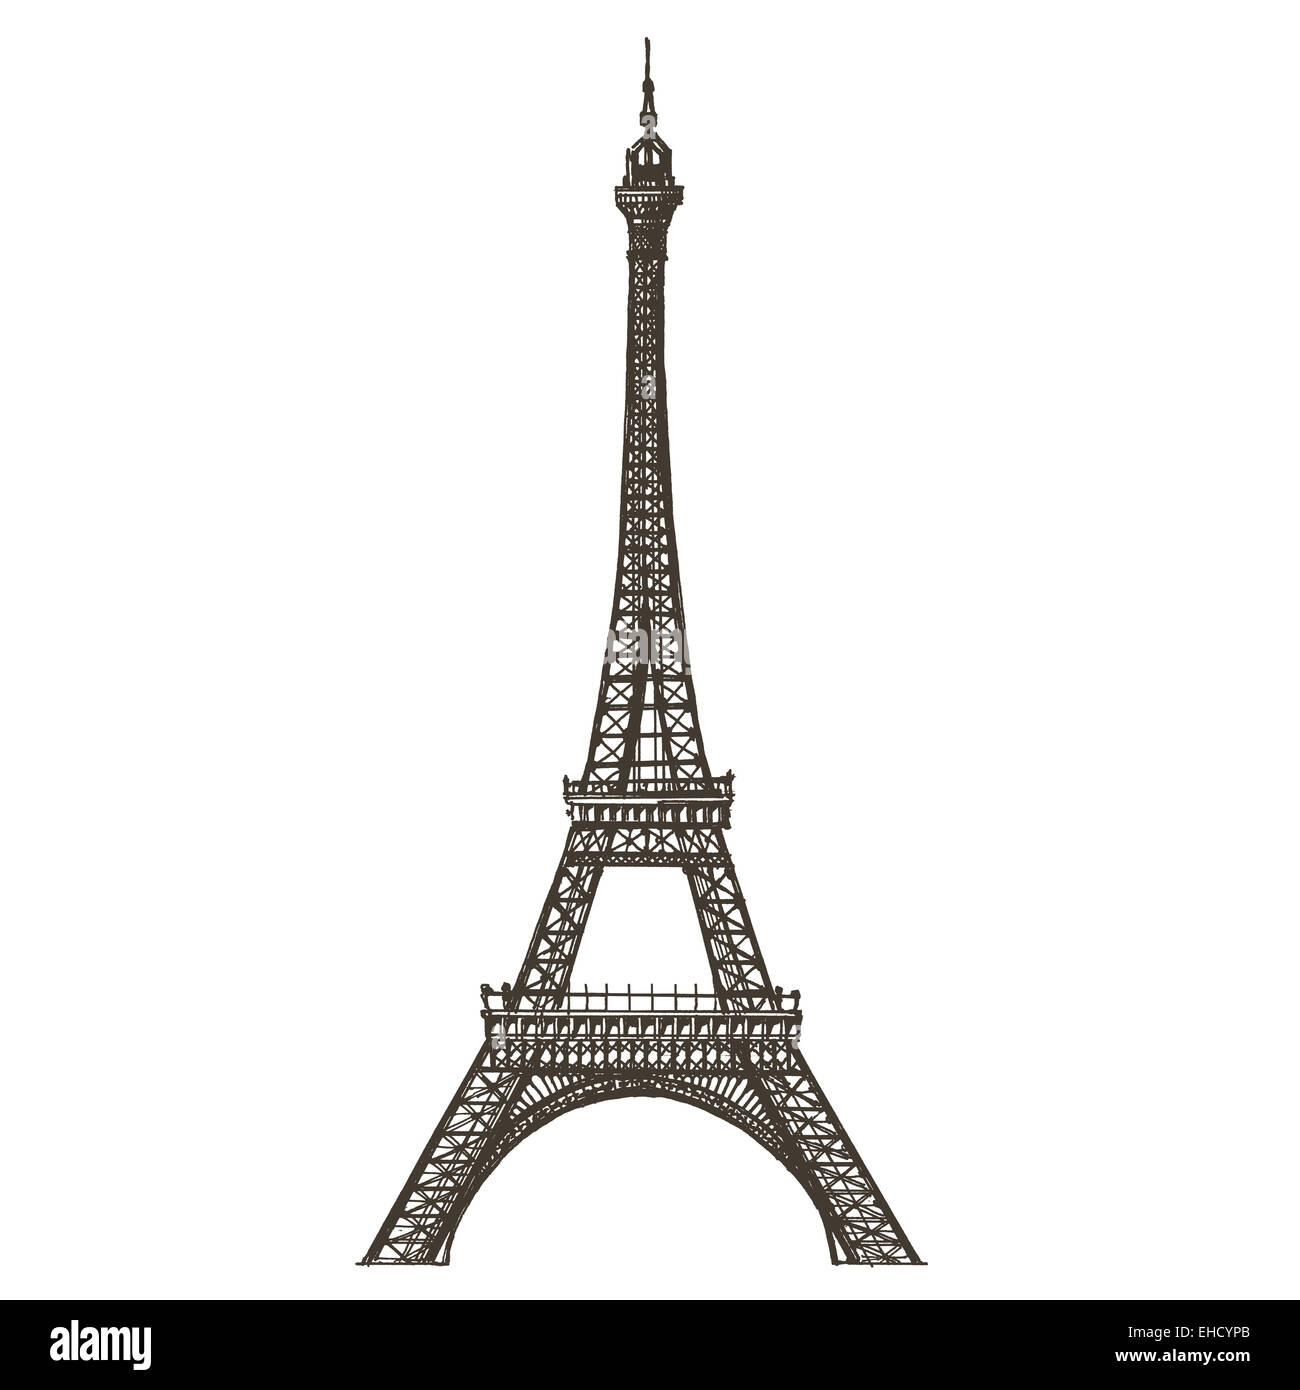 Eiffel tower vector logo design template. Paris or France icon. - Stock Image